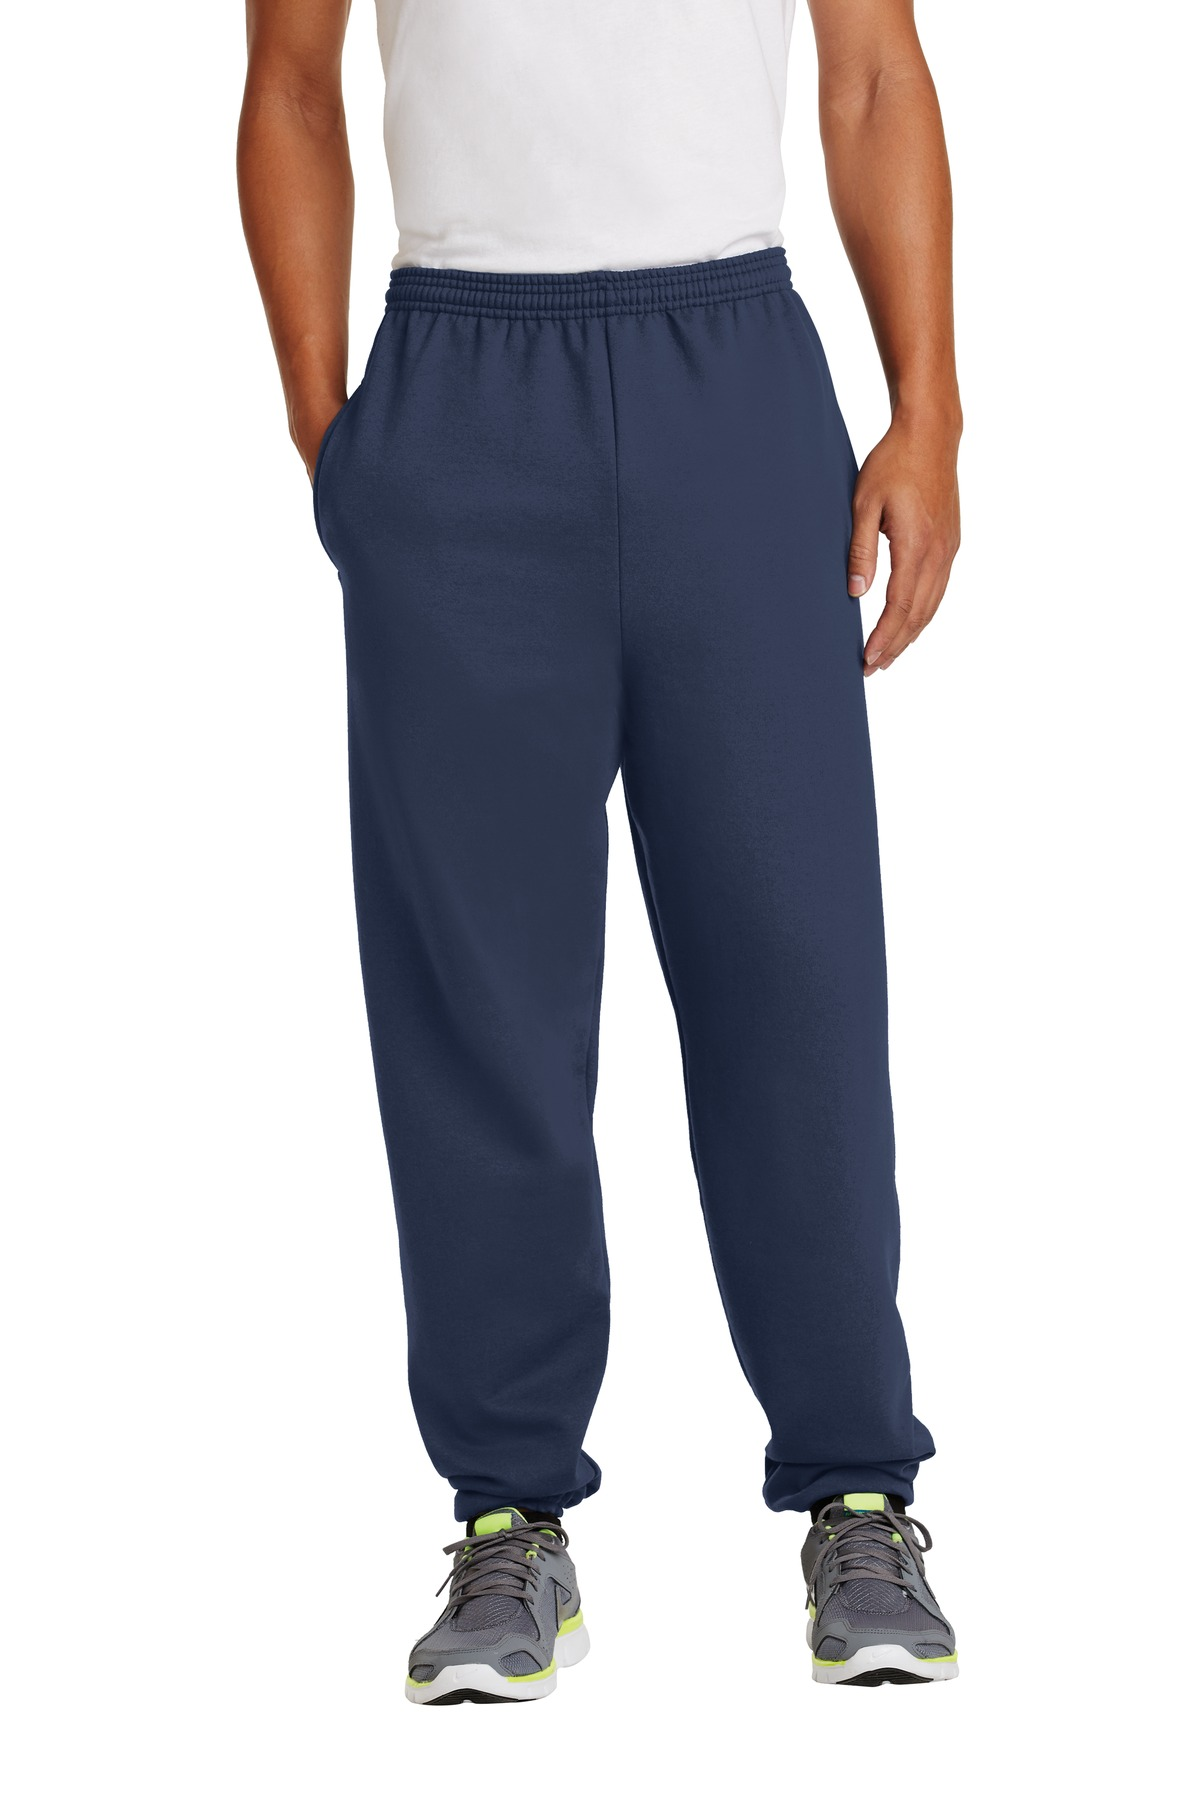 EL PASO POLICE Port & Company® - Essential Fleece Sweatpant with Pockets.-Port & Company